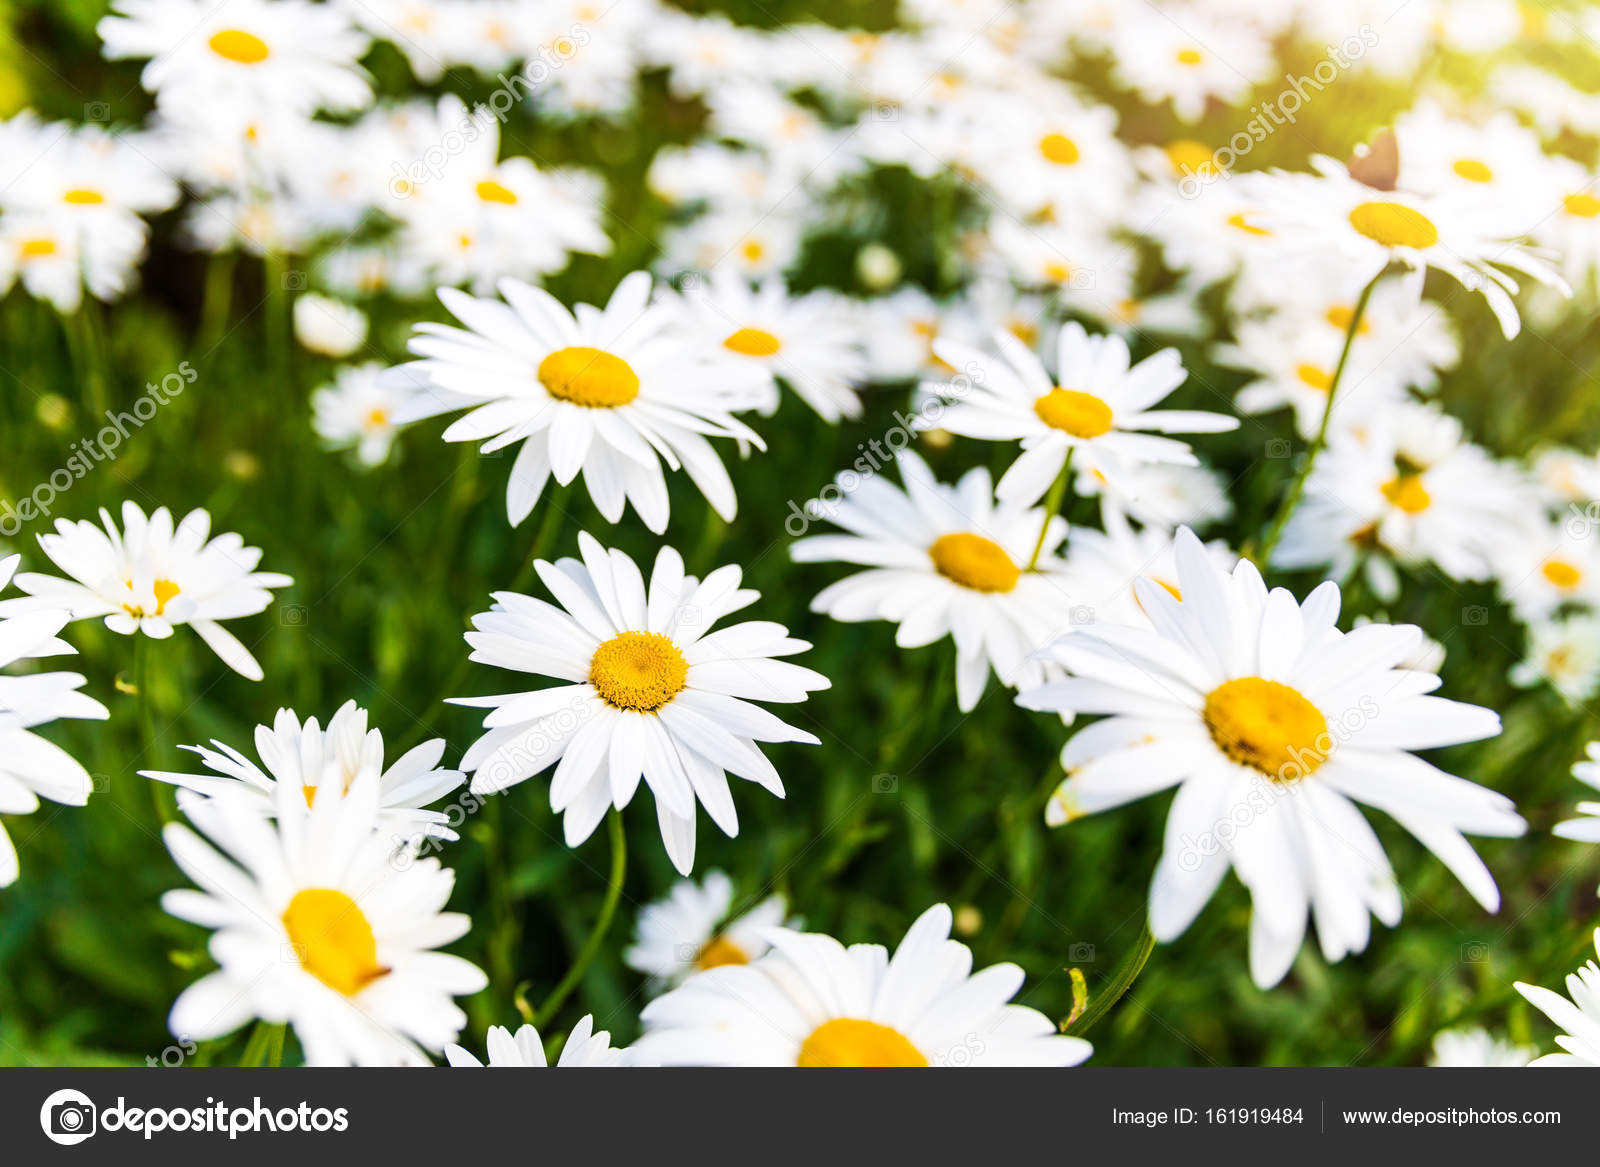 Meadow Of Daisy Flowers Stock Photo Ronstik 161919484